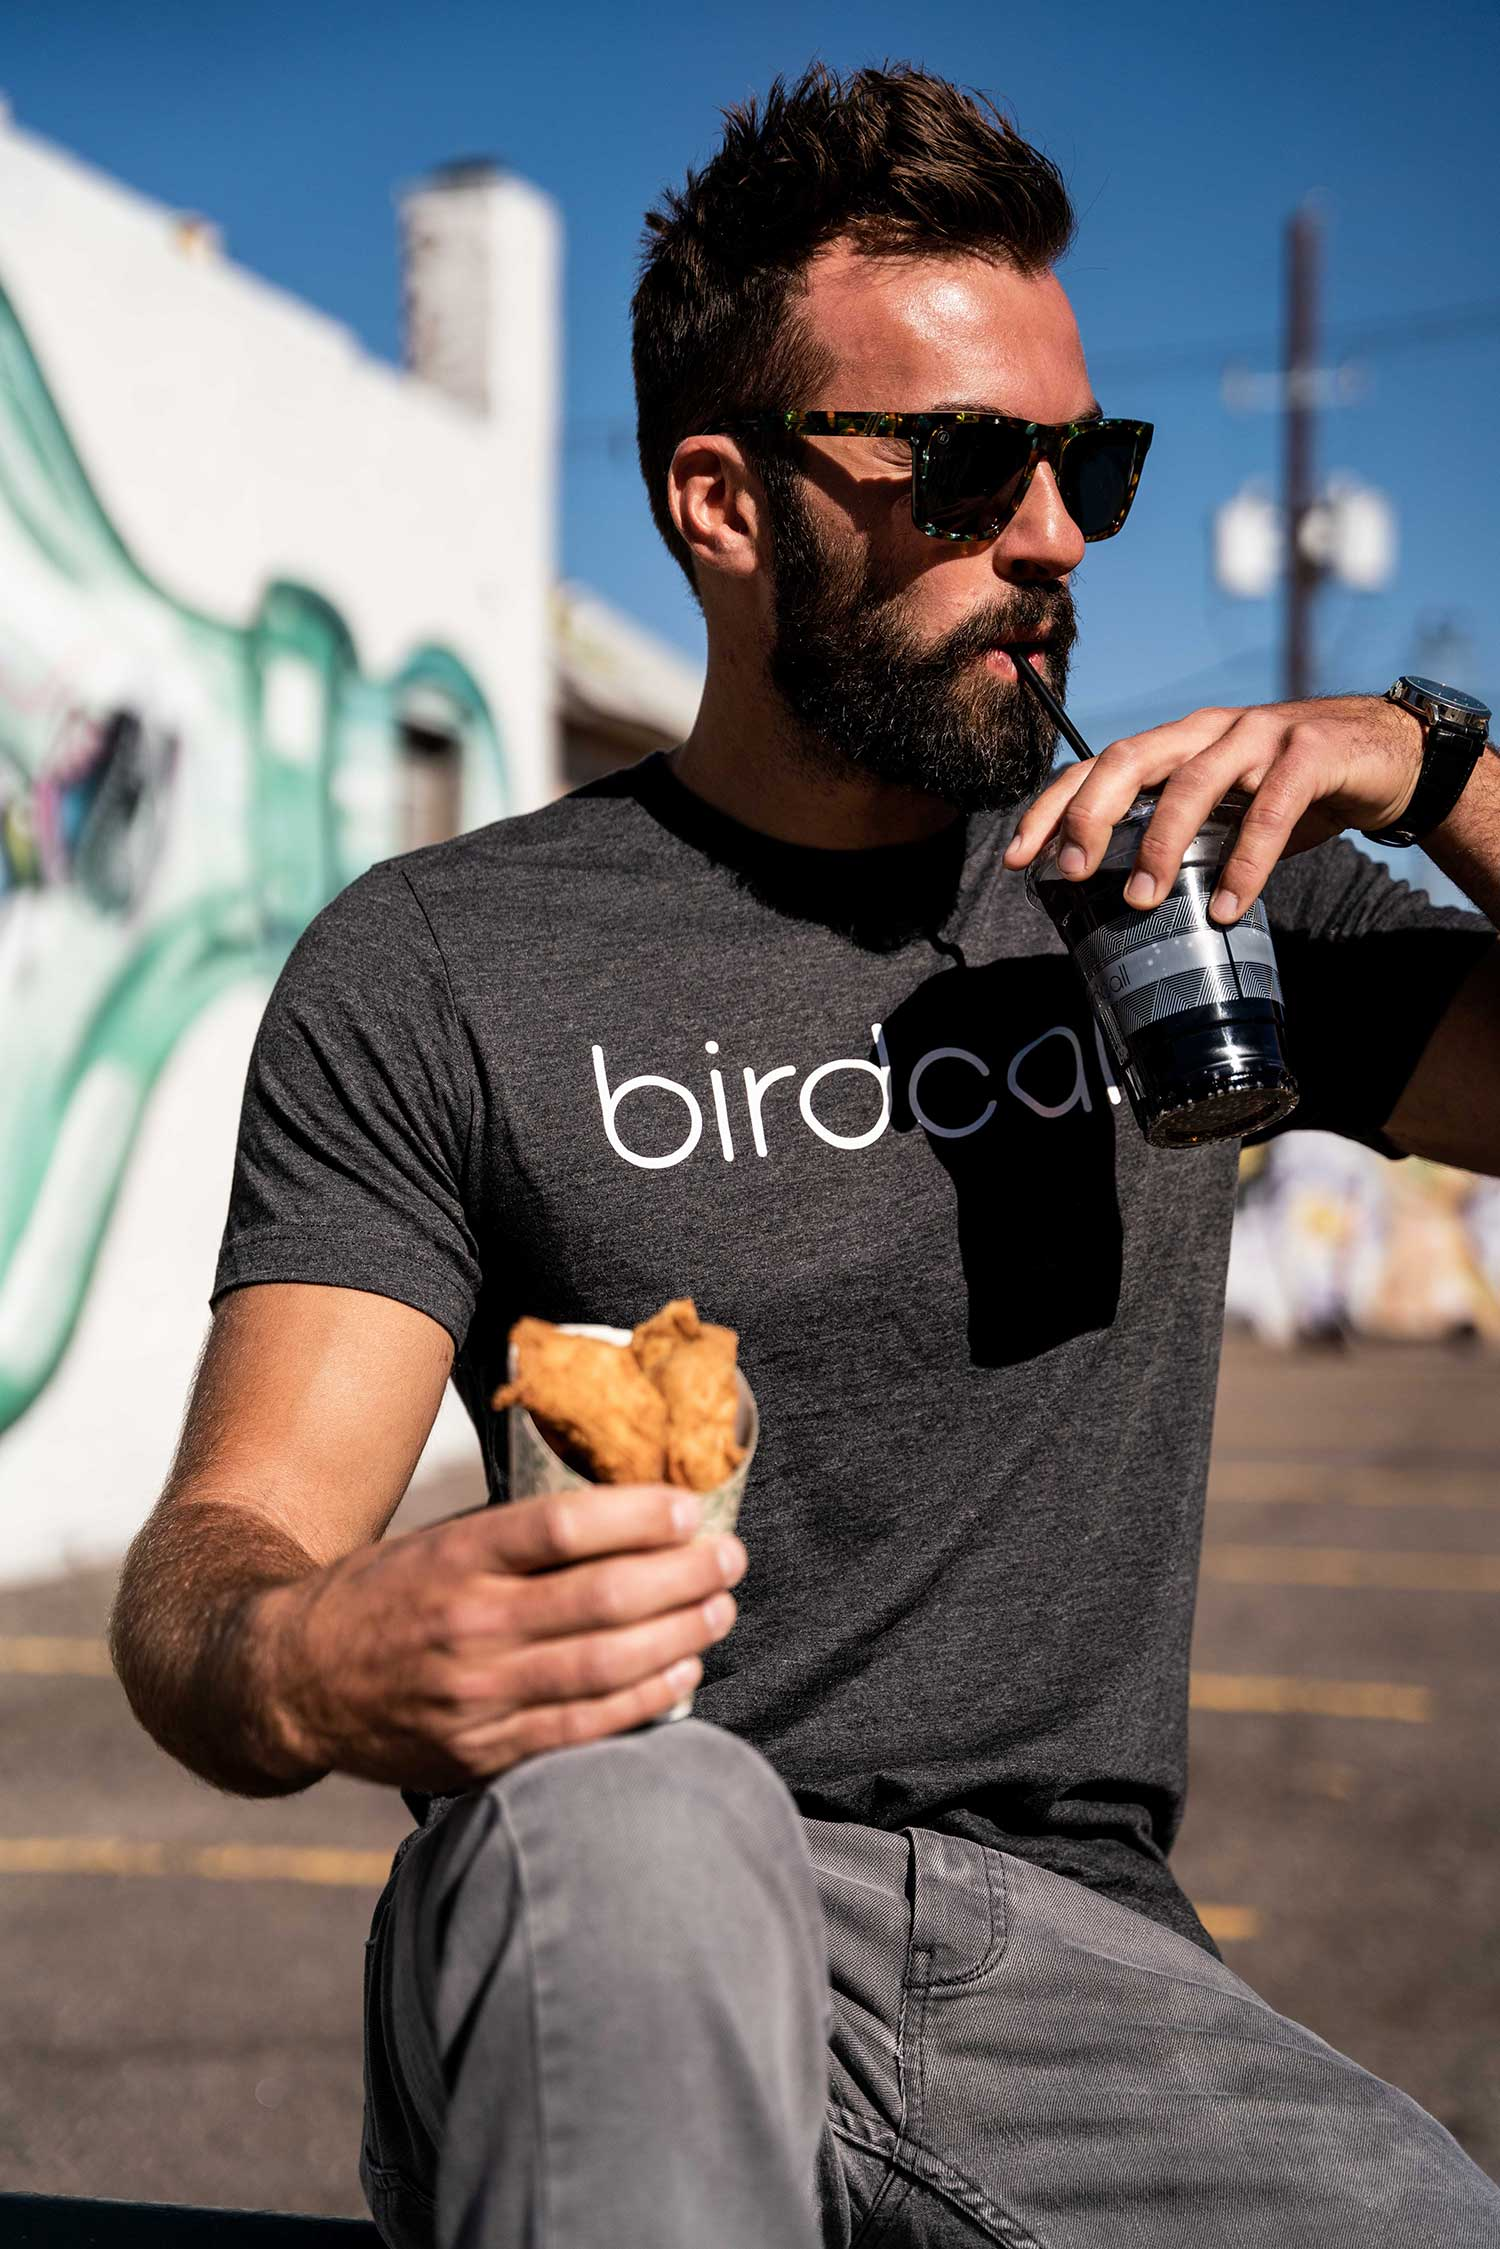 Man in Birdcall t-shirt eating